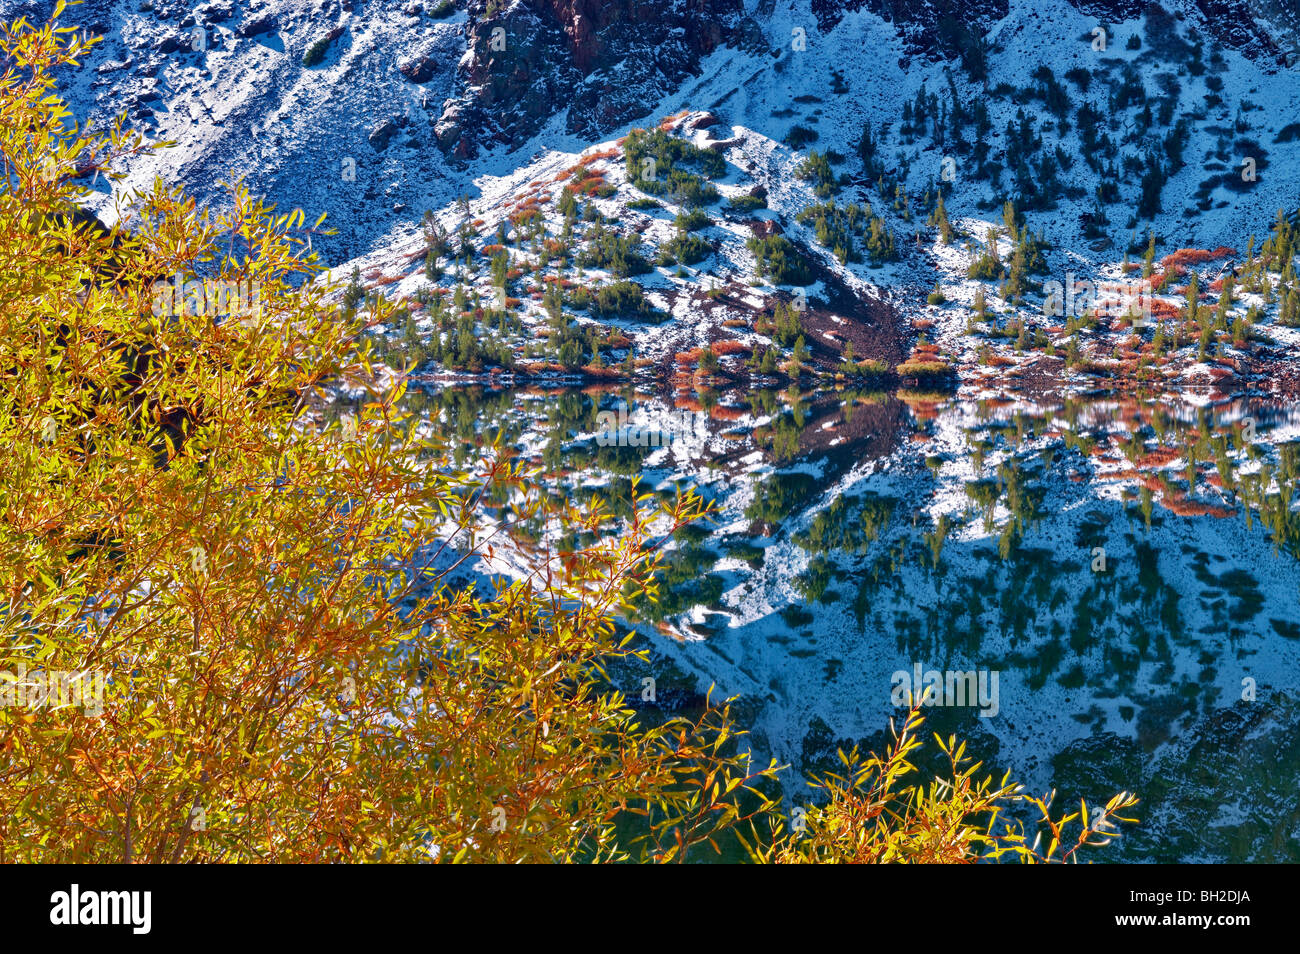 Ellery Lake with fall colored willows and reflection after snowfall. Inyo National Forest, California - Stock Image